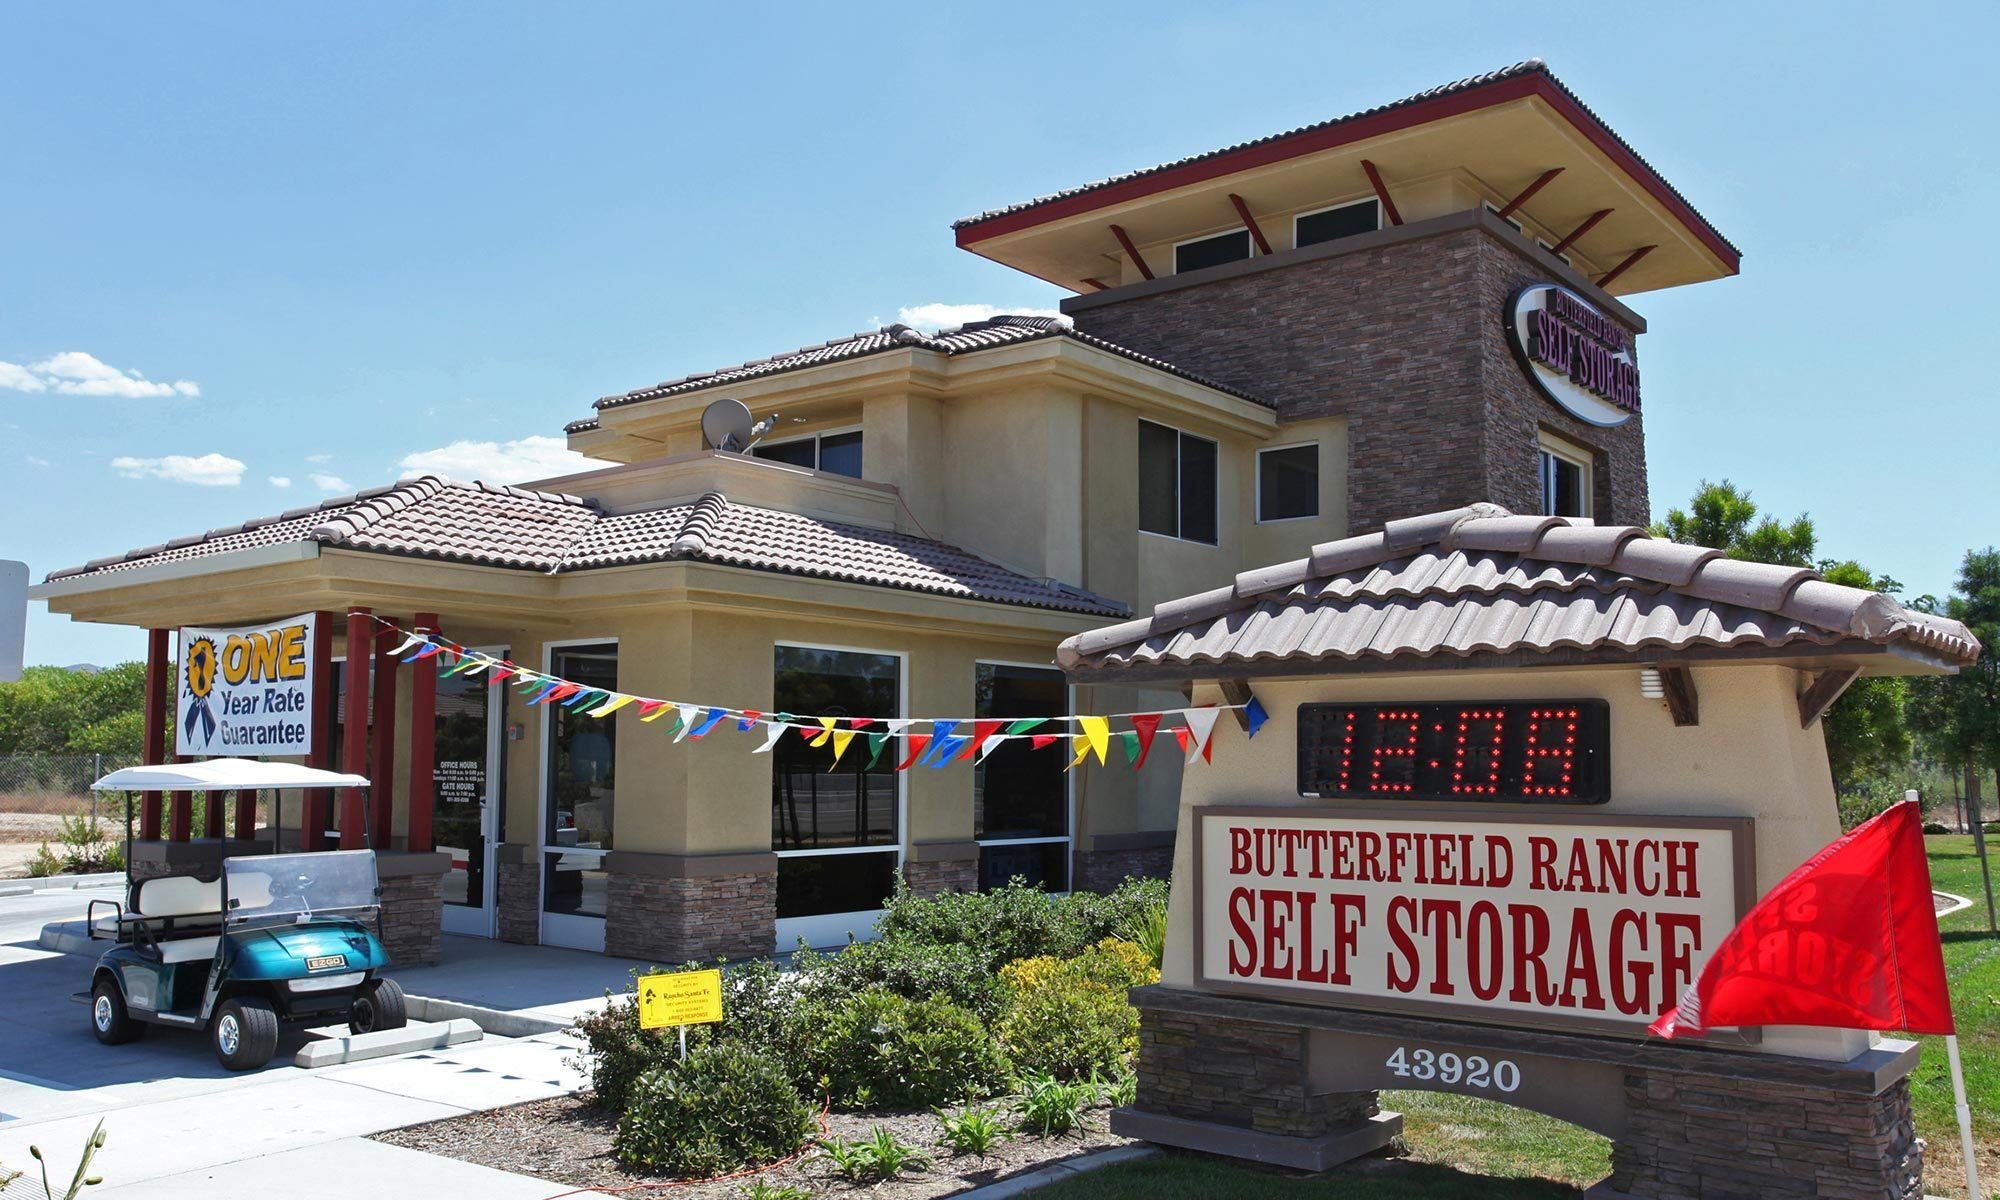 Self Storage Units Temecula Ca Butterfield Ranch Self